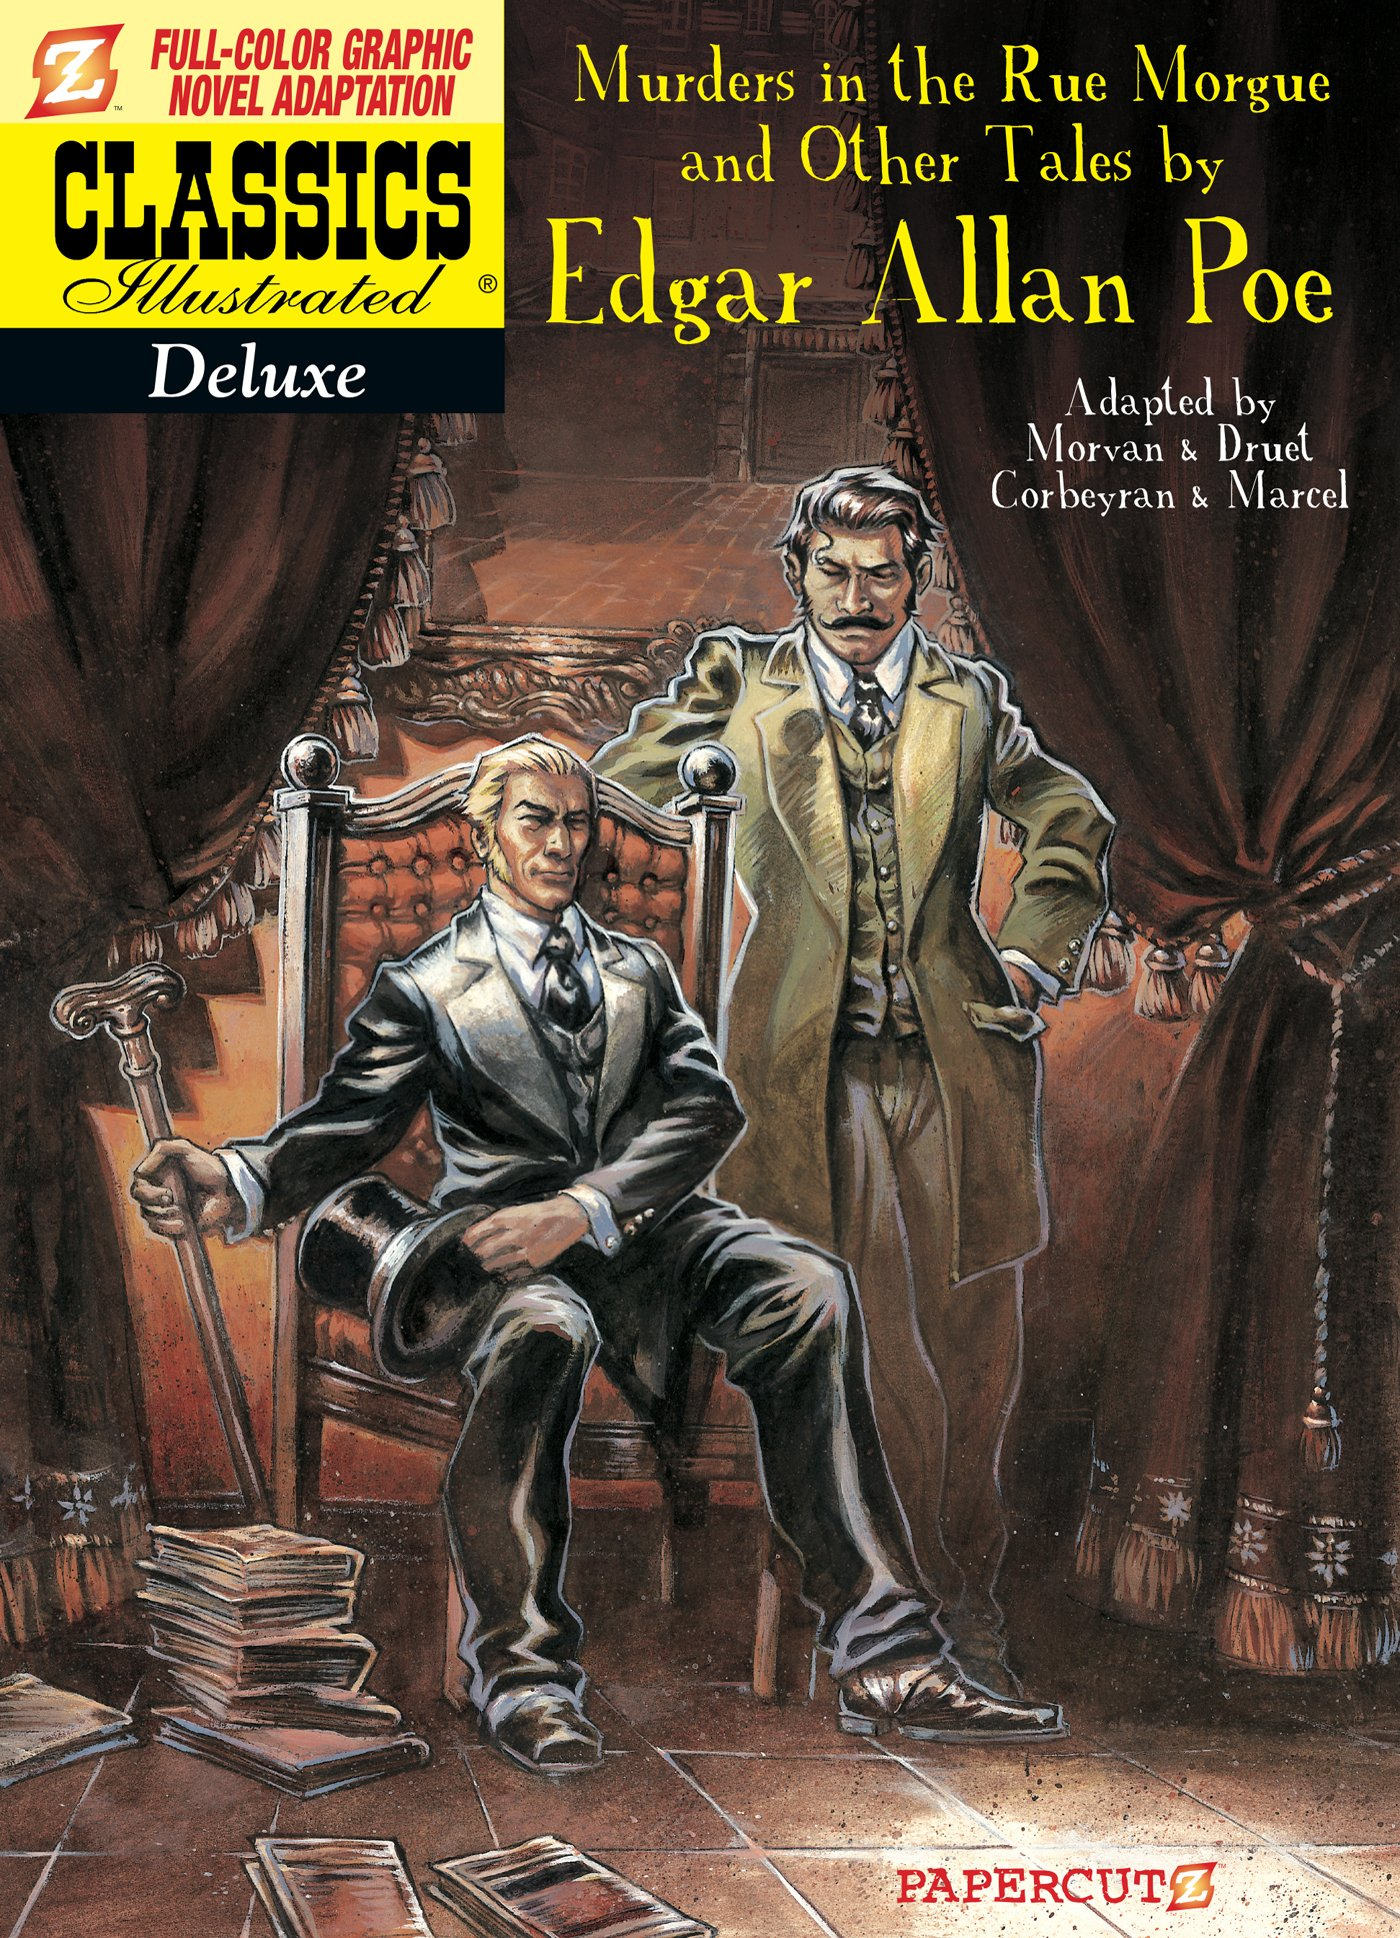 Download Classics Illustrated Deluxe #10: The Murders in the Rue Morgue, and Other Tales (Classics Illustrated Deluxe Graphic Nove) ebook